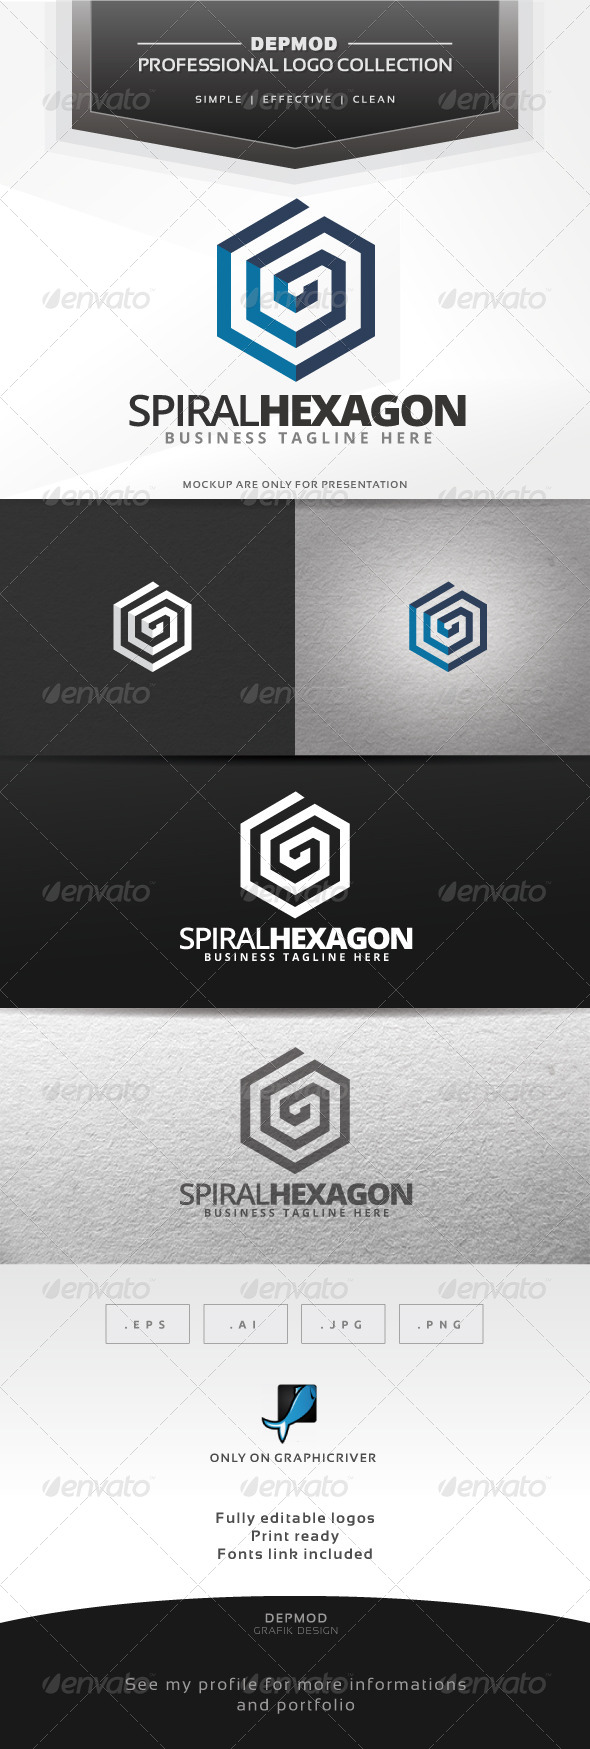 GraphicRiver Spiral Hexagon Logo 6599892